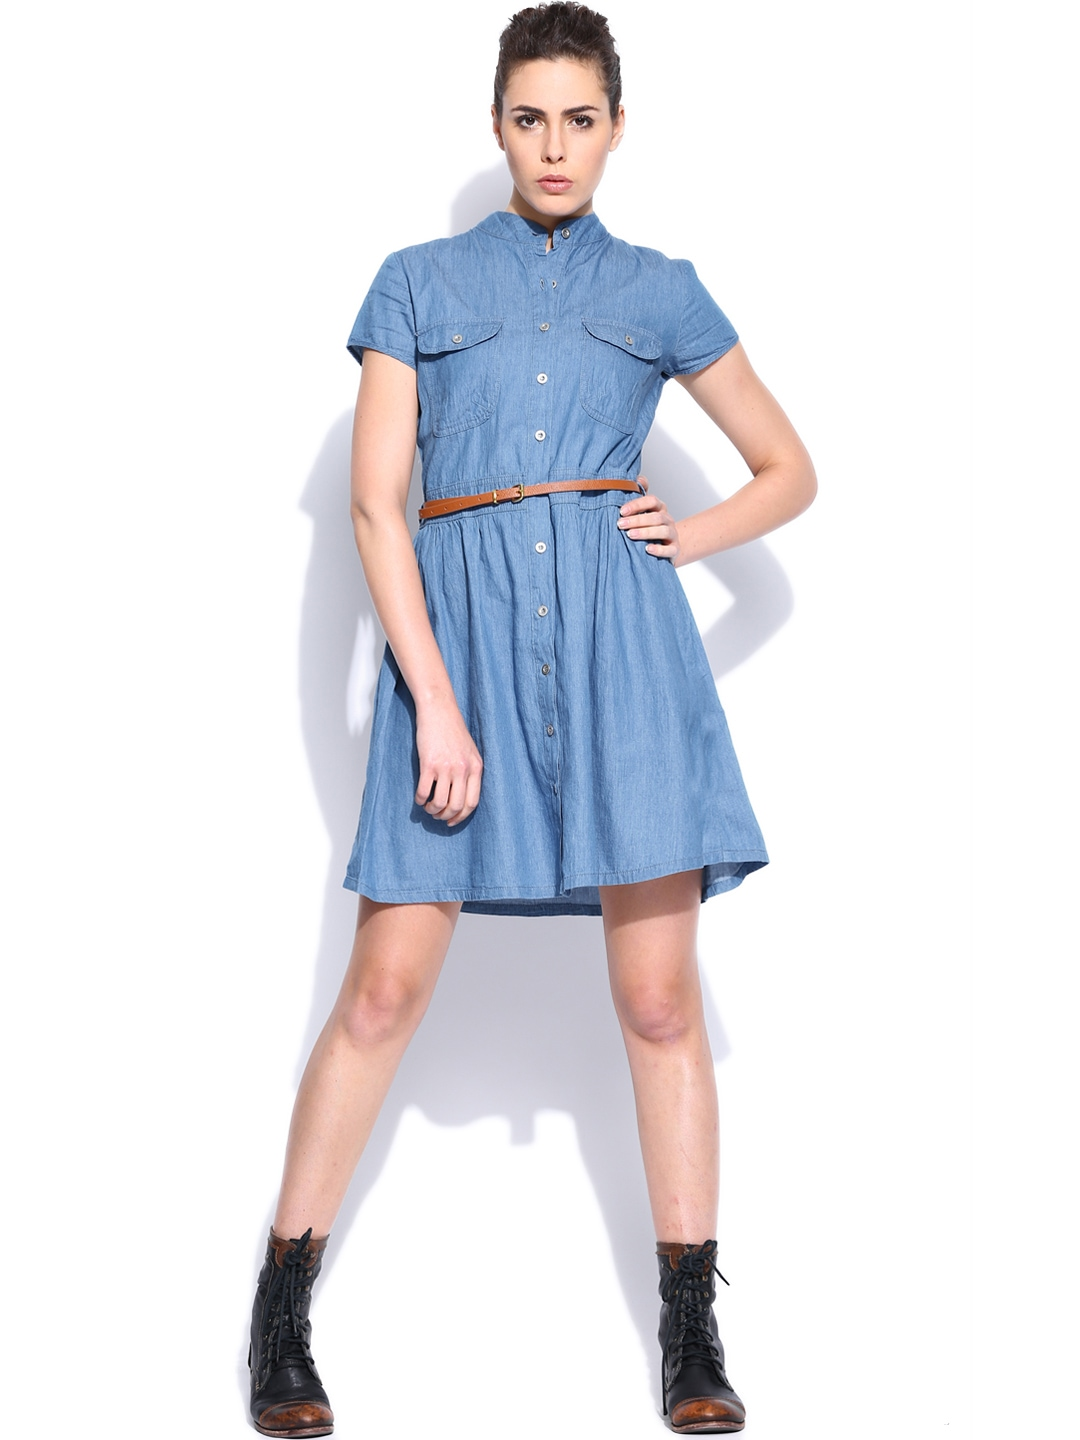 Myntra Roadster Blue Chambray Belted Dress 560947 Buy